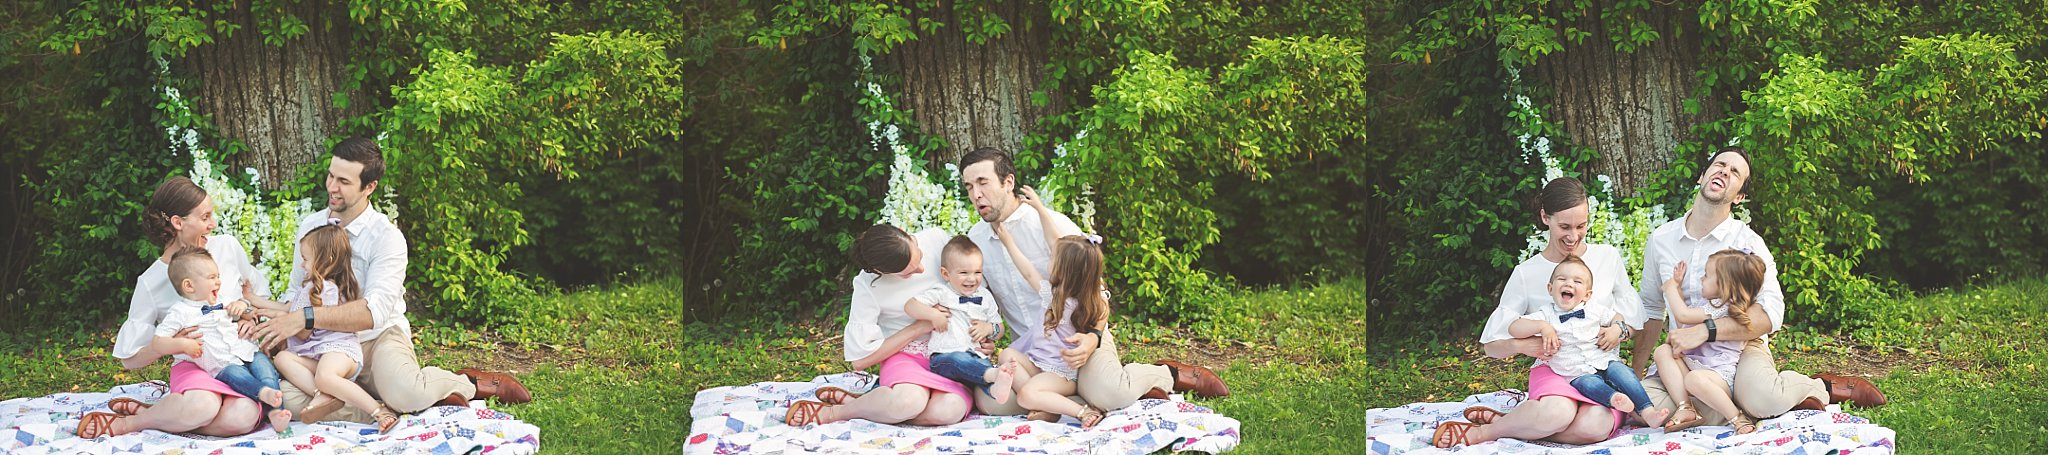 Candid Family Portraits with Cheryl Logan Photography